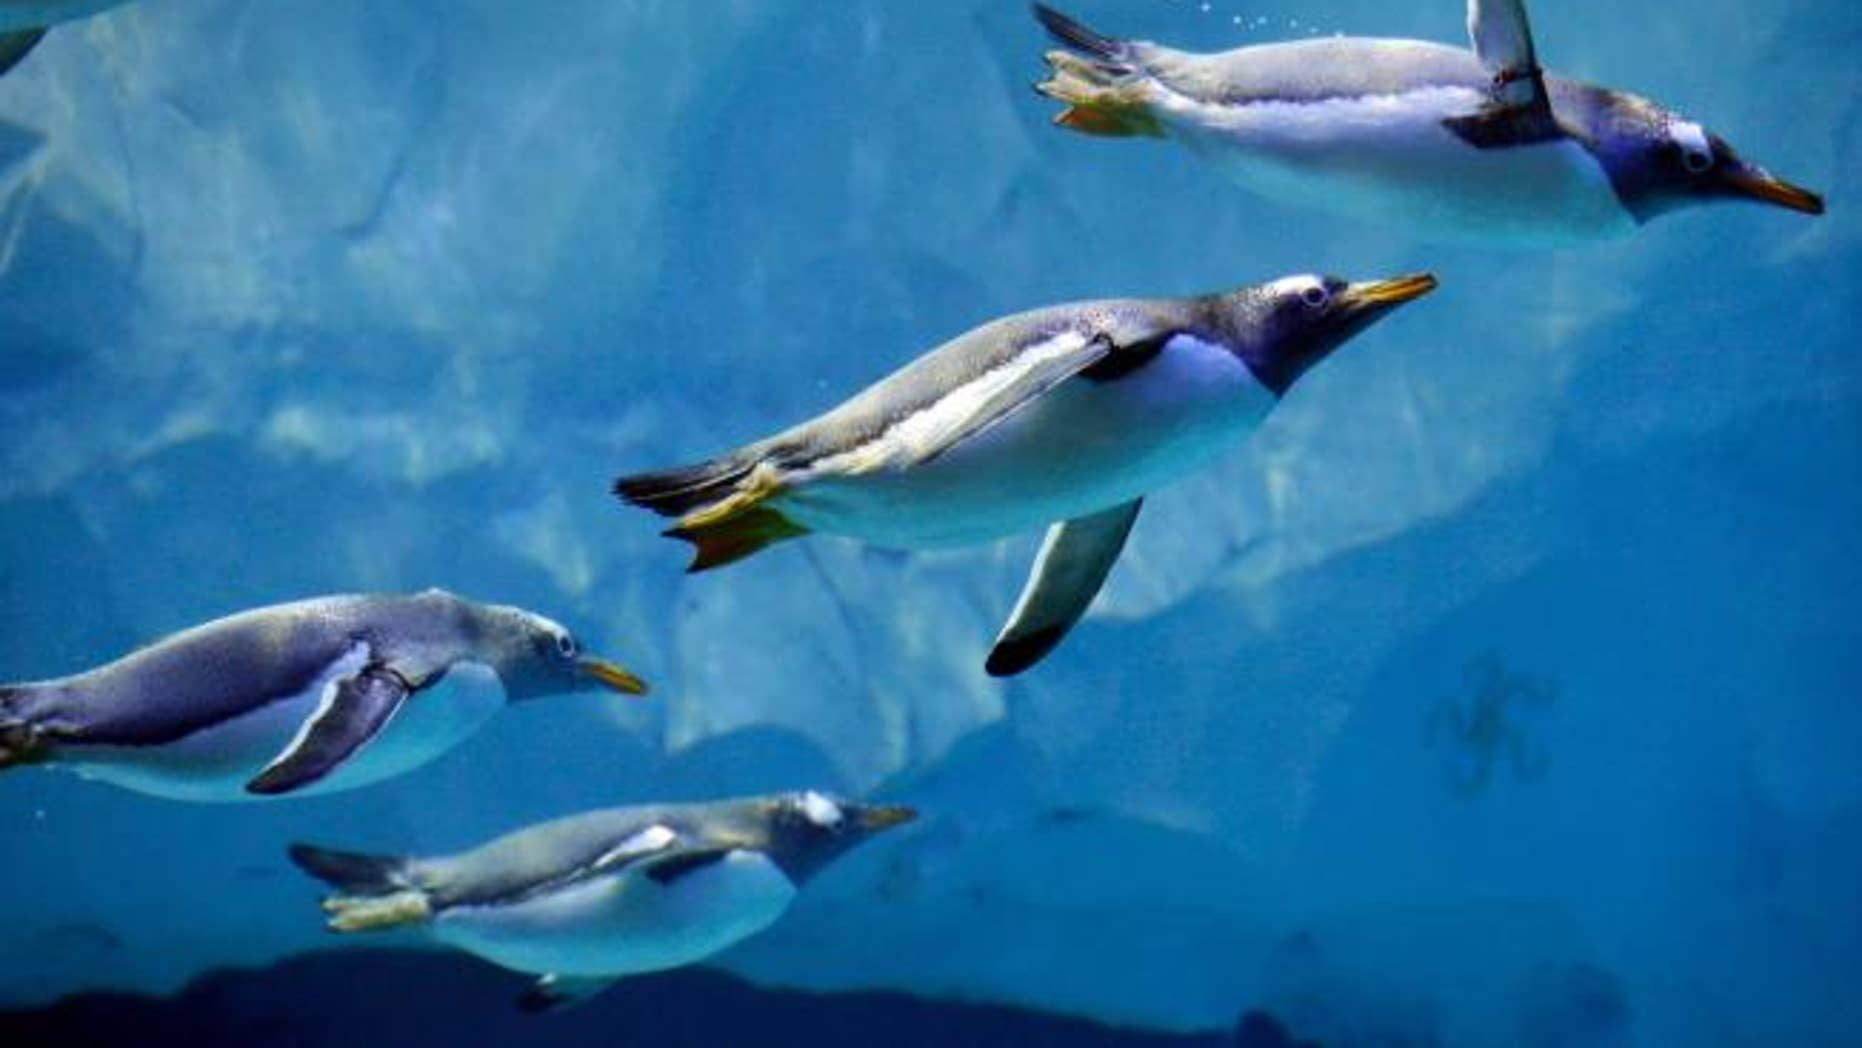 Penguins swim in the Detroit Zoo's new Polk Penguin Conservation Center, Wednesday, April 13, 2016, in Royal Oak, Mich.